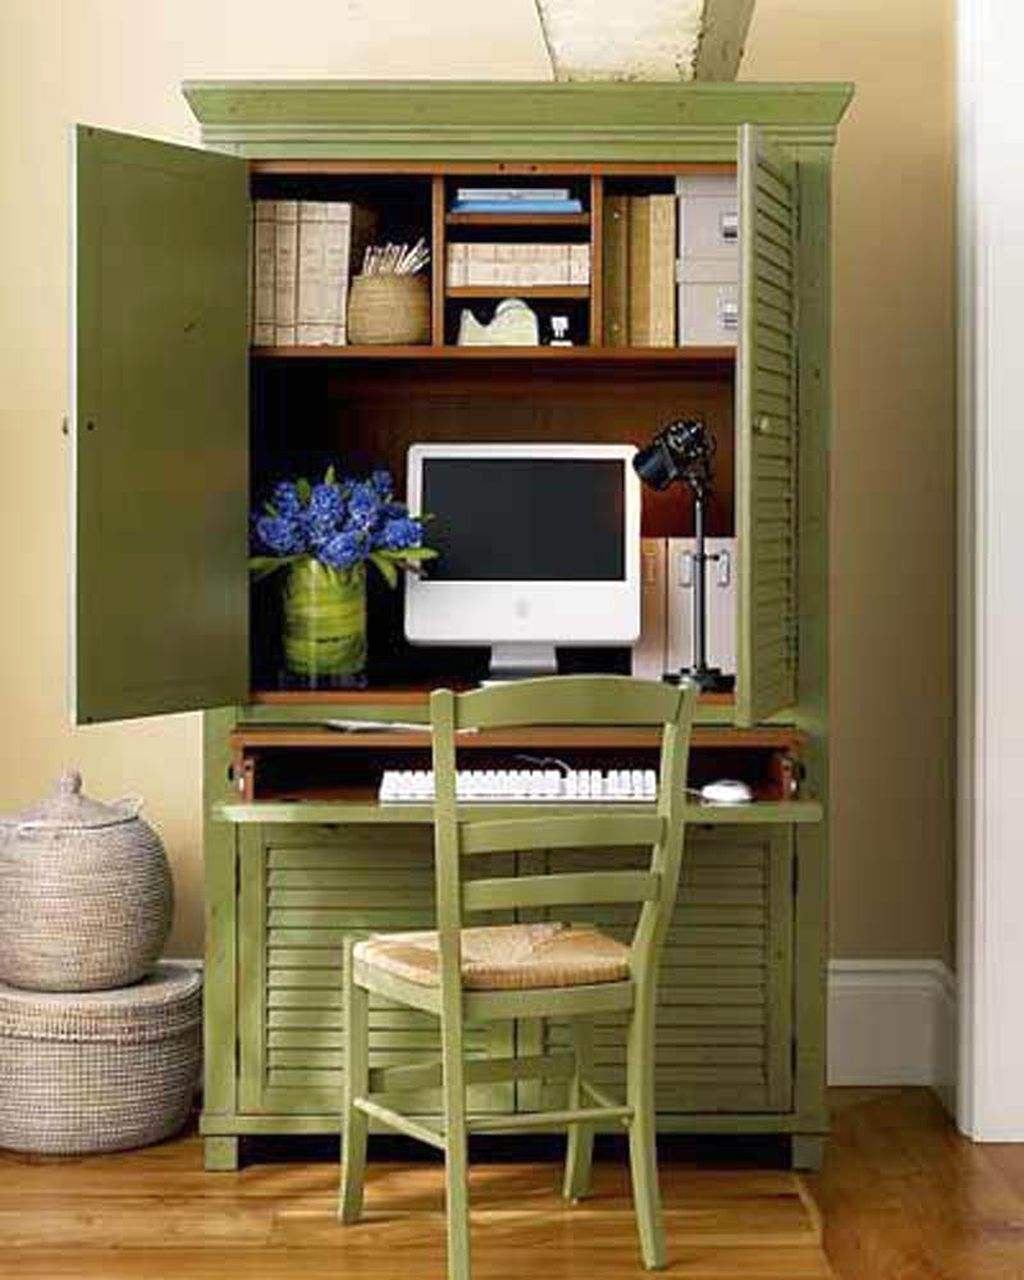 Green cupboard home office design ideas for small spaces - Home office designs ideas ...